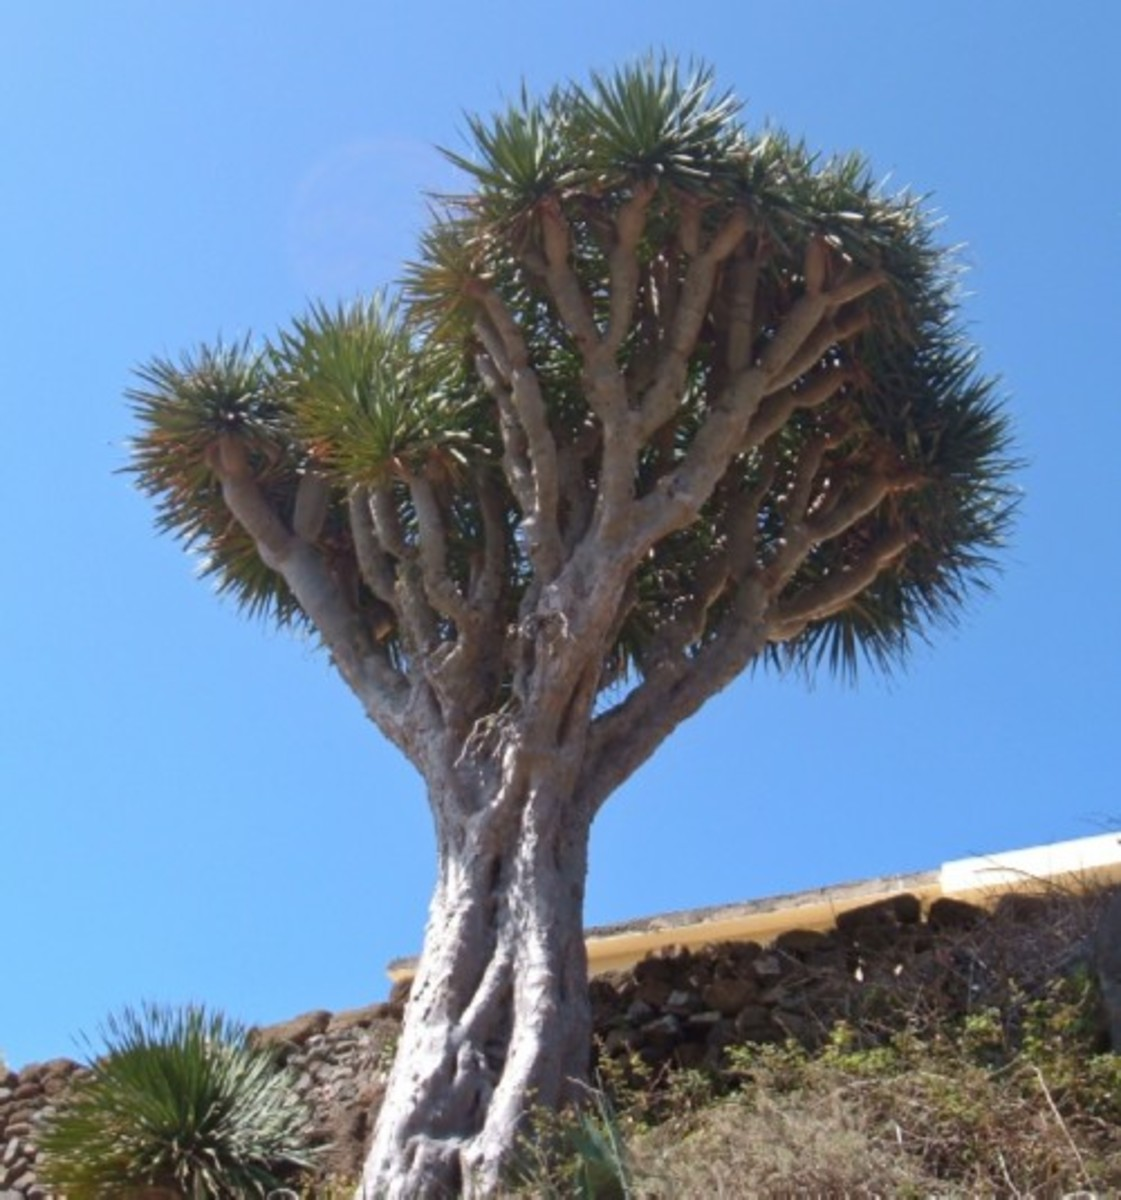 Chinamada Dragon Tree. Photo by Steve Andrews